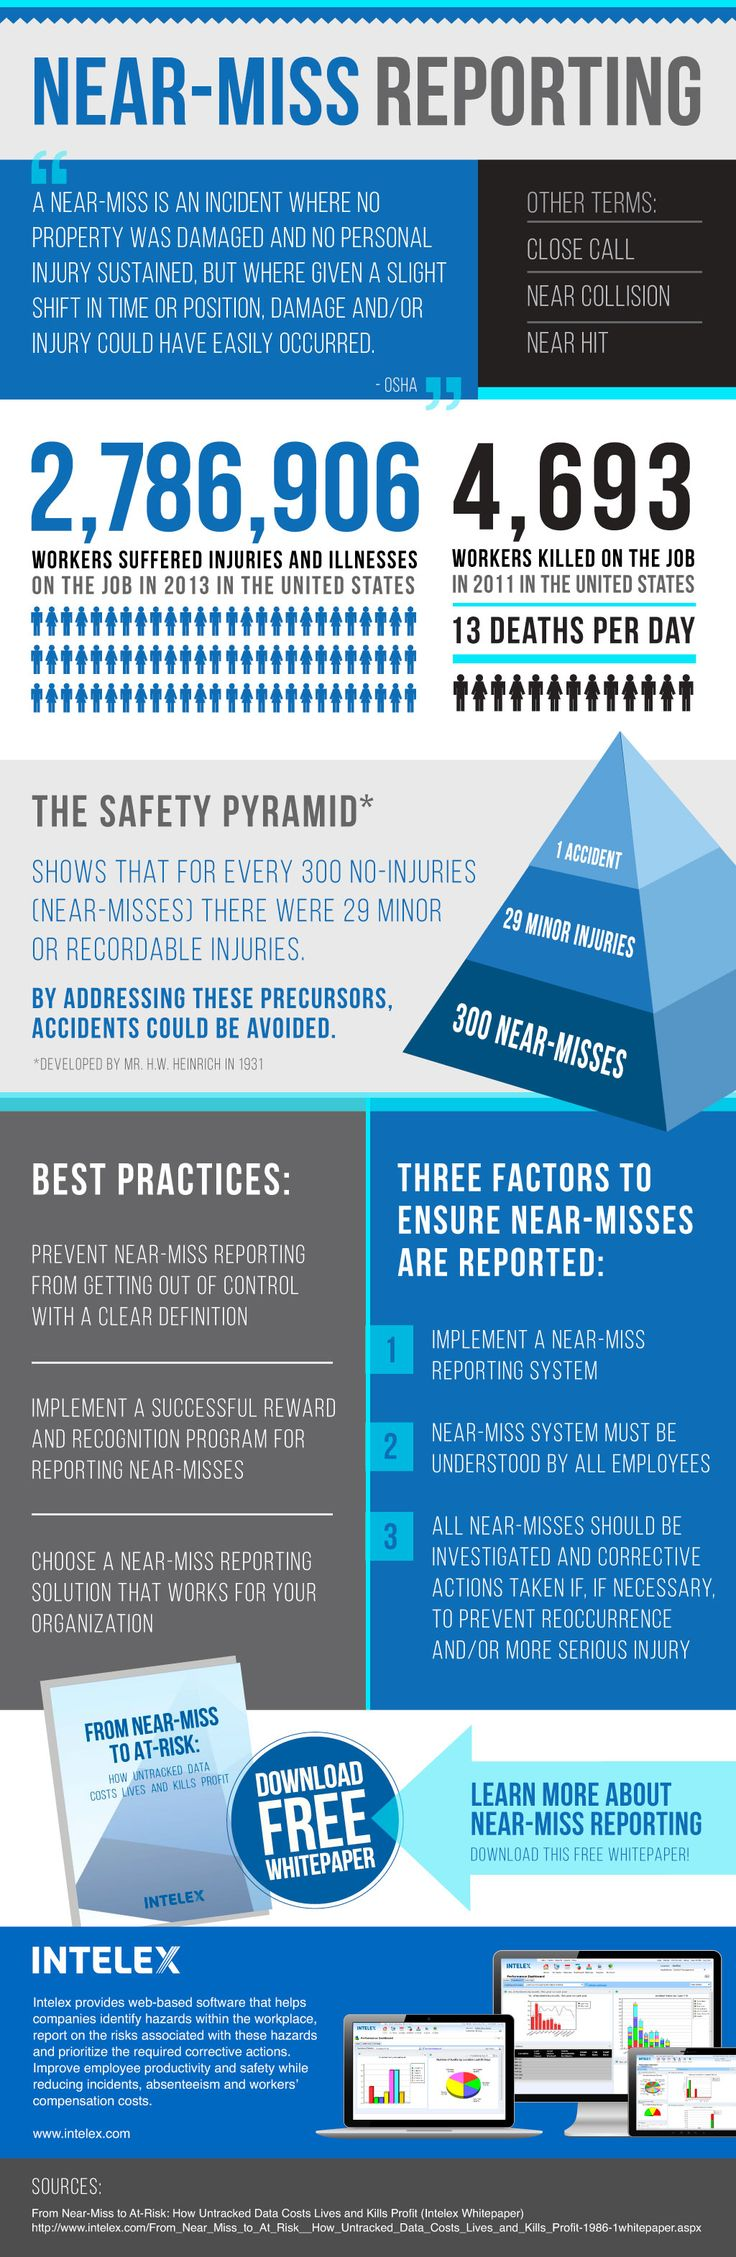 Establishing a reporting culture can transform your safety program from a reactive process to a proactive process. Organizations can do this by implementing a near-miss management system to manage safety incidents, accidents and injuries. #intelex #safety #incidents #accidents #injuries #near-miss #streamline #workflow #infographic #SafetyPyramid